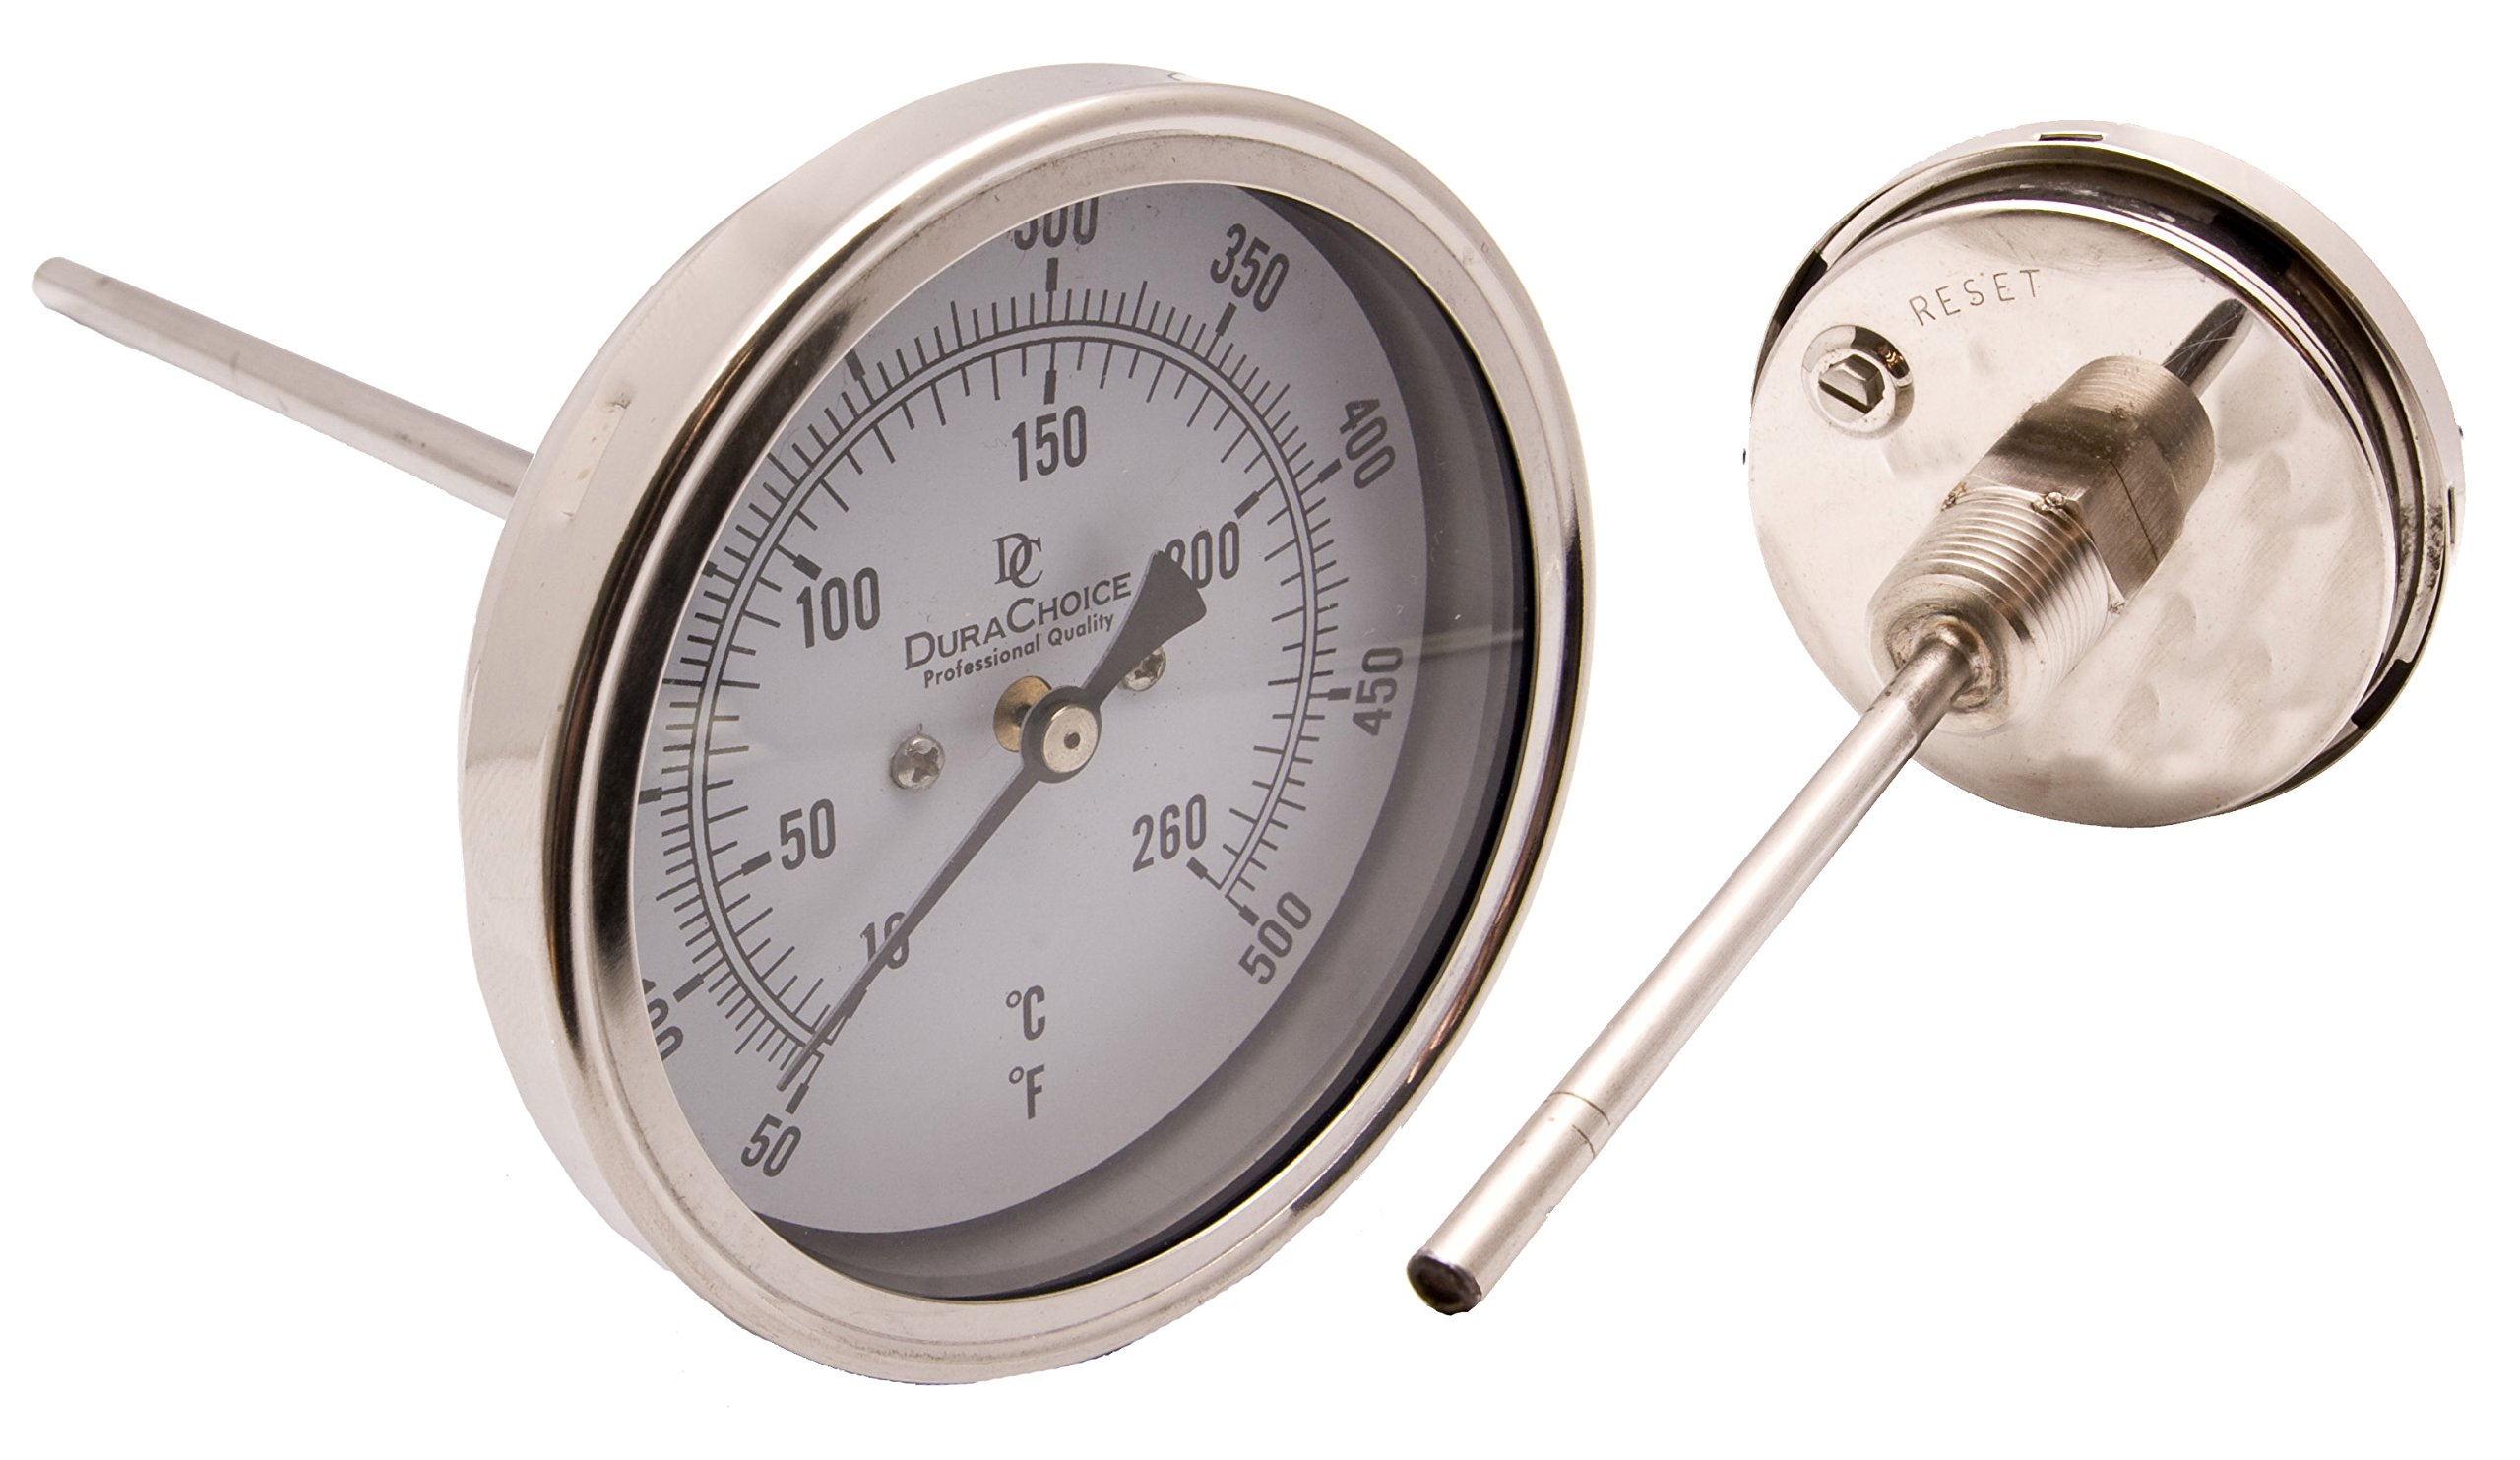 Industrial Bimetal Thermometer 3'' Face x 9'' Stem, 0-250 w/Calibration Dial